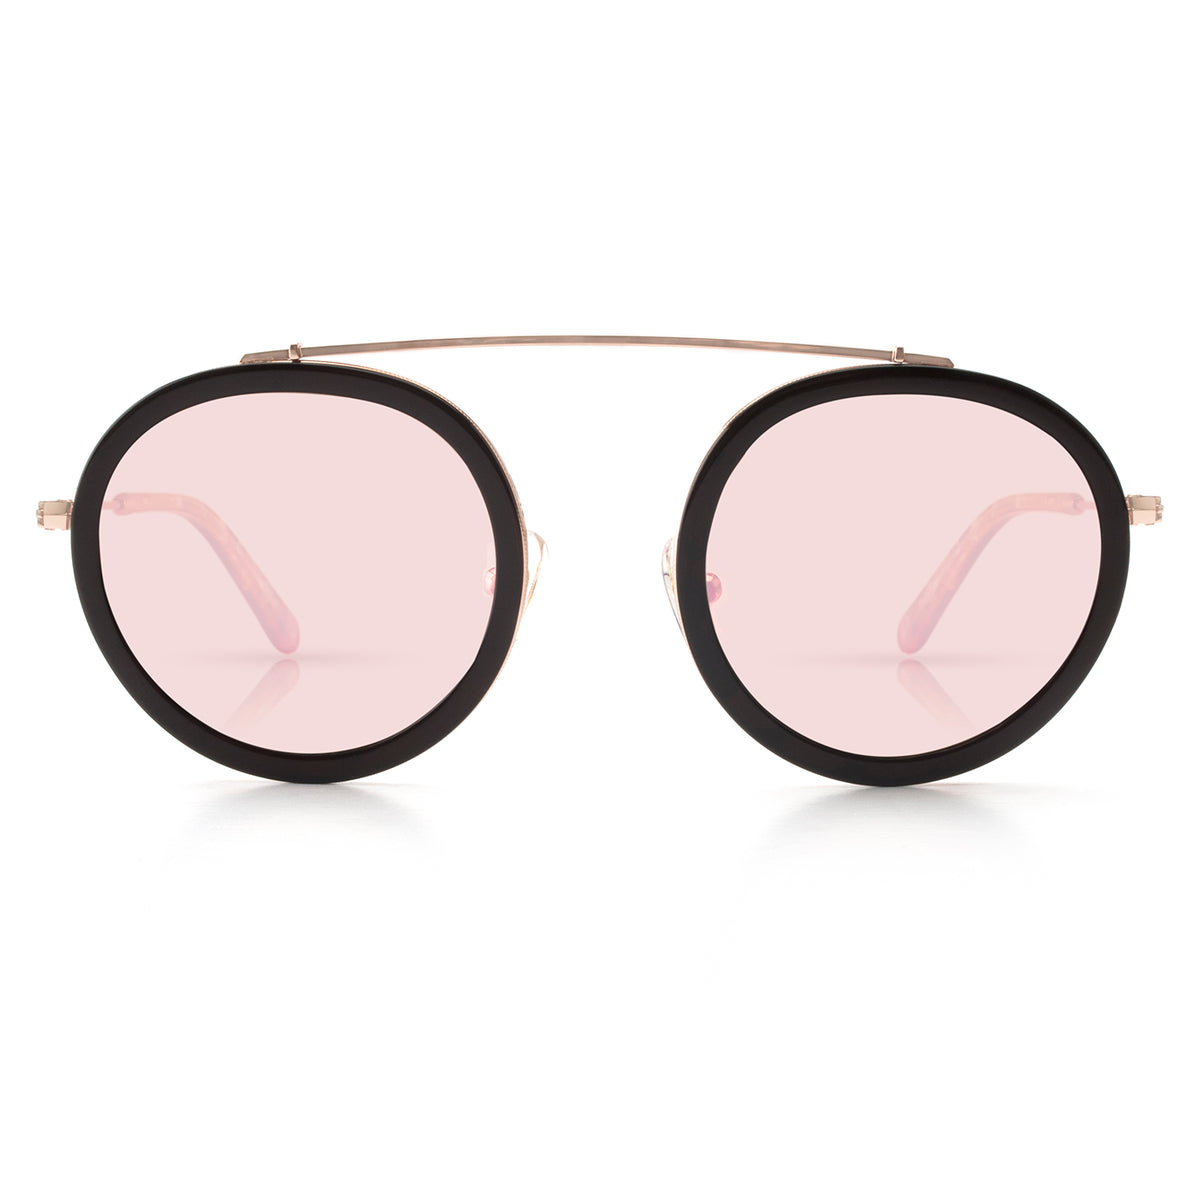 CONTI | Mystic Rose Gold | round acetate Sunglasses with a unique 24K gold brow bridge